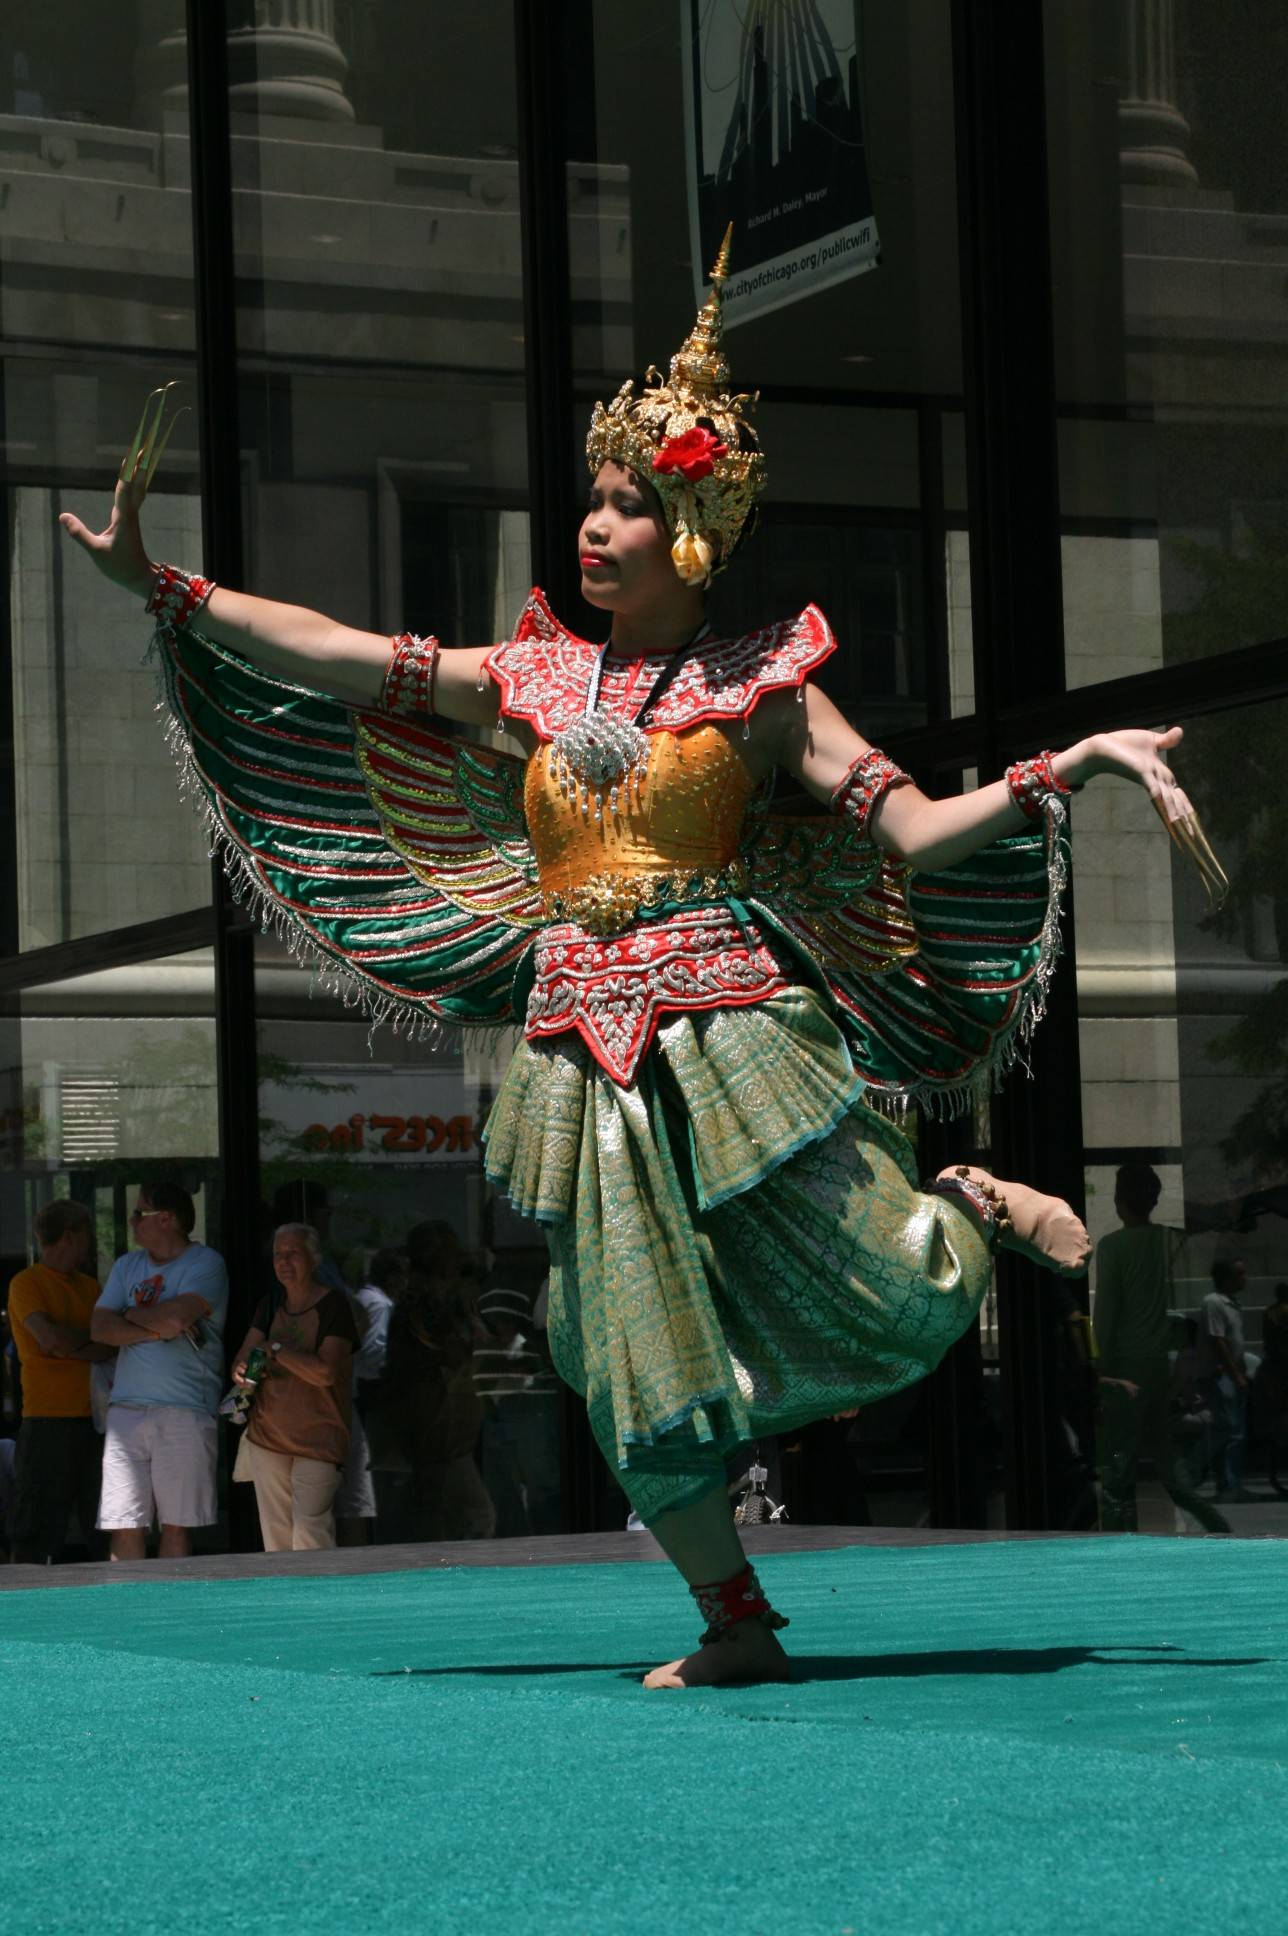 Traditional Thai dancers are part of the mix for the Destination Asia Festival this weekend at the Morton Arboretum in Lisle.